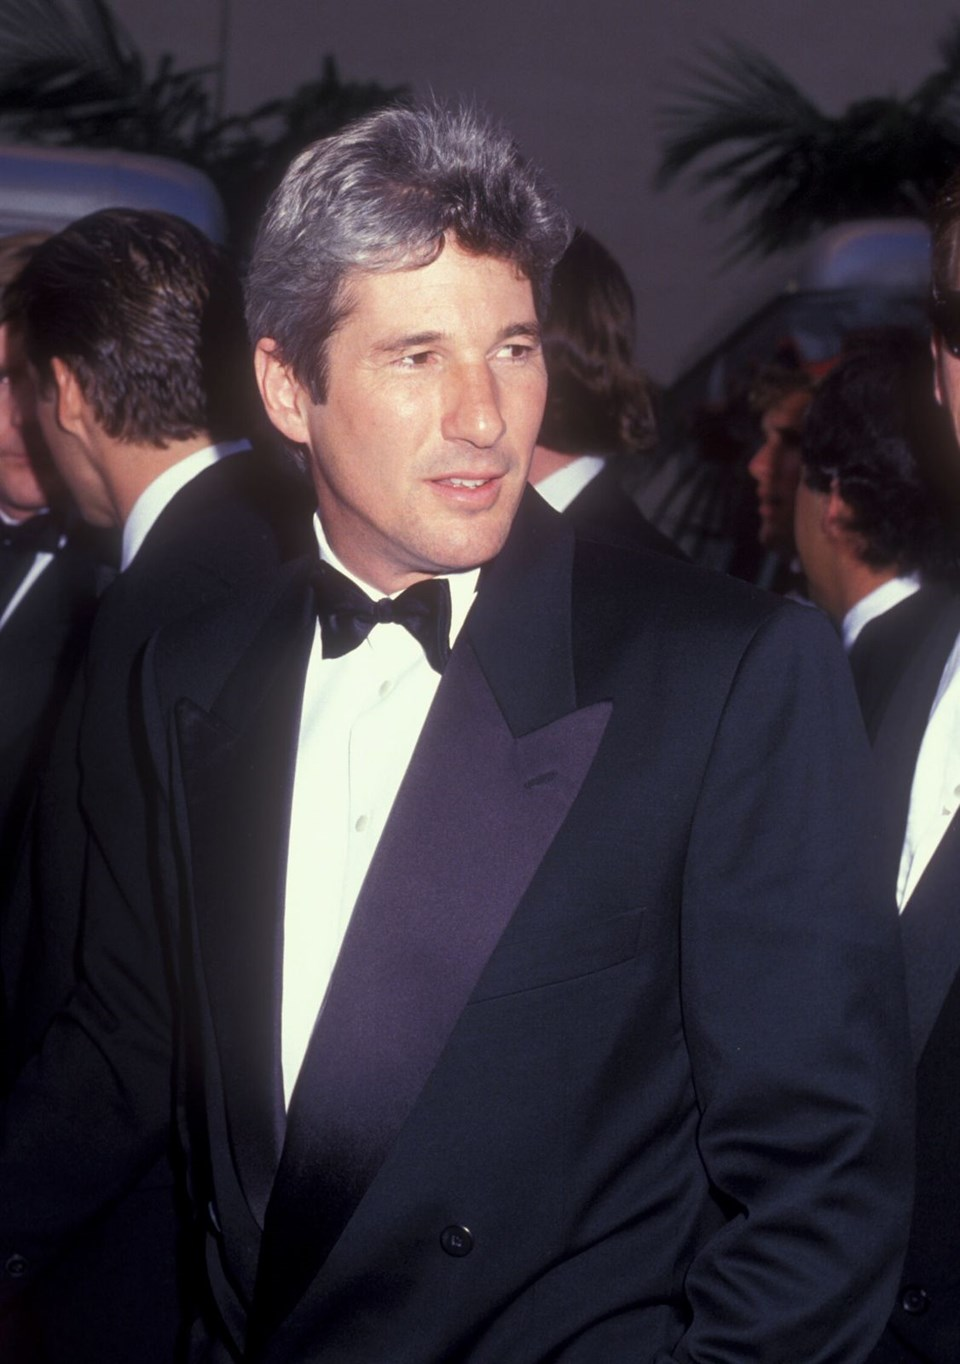 1993 VE 1999: RICHARD GERE